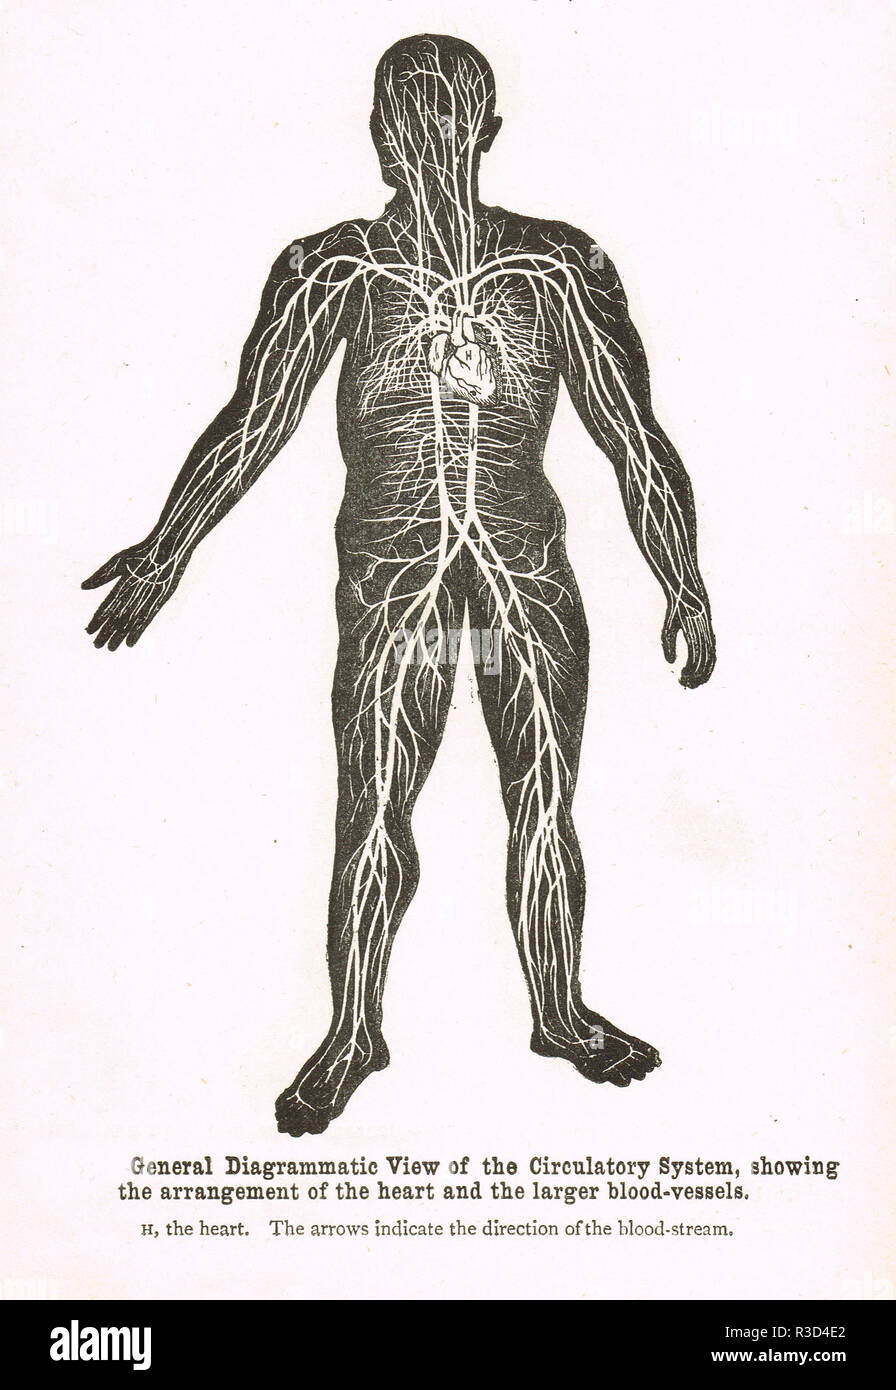 Circulatory system, human body, showing the arrangement of the heart and larger blood vessels.   A 19th century diagram - Stock Image